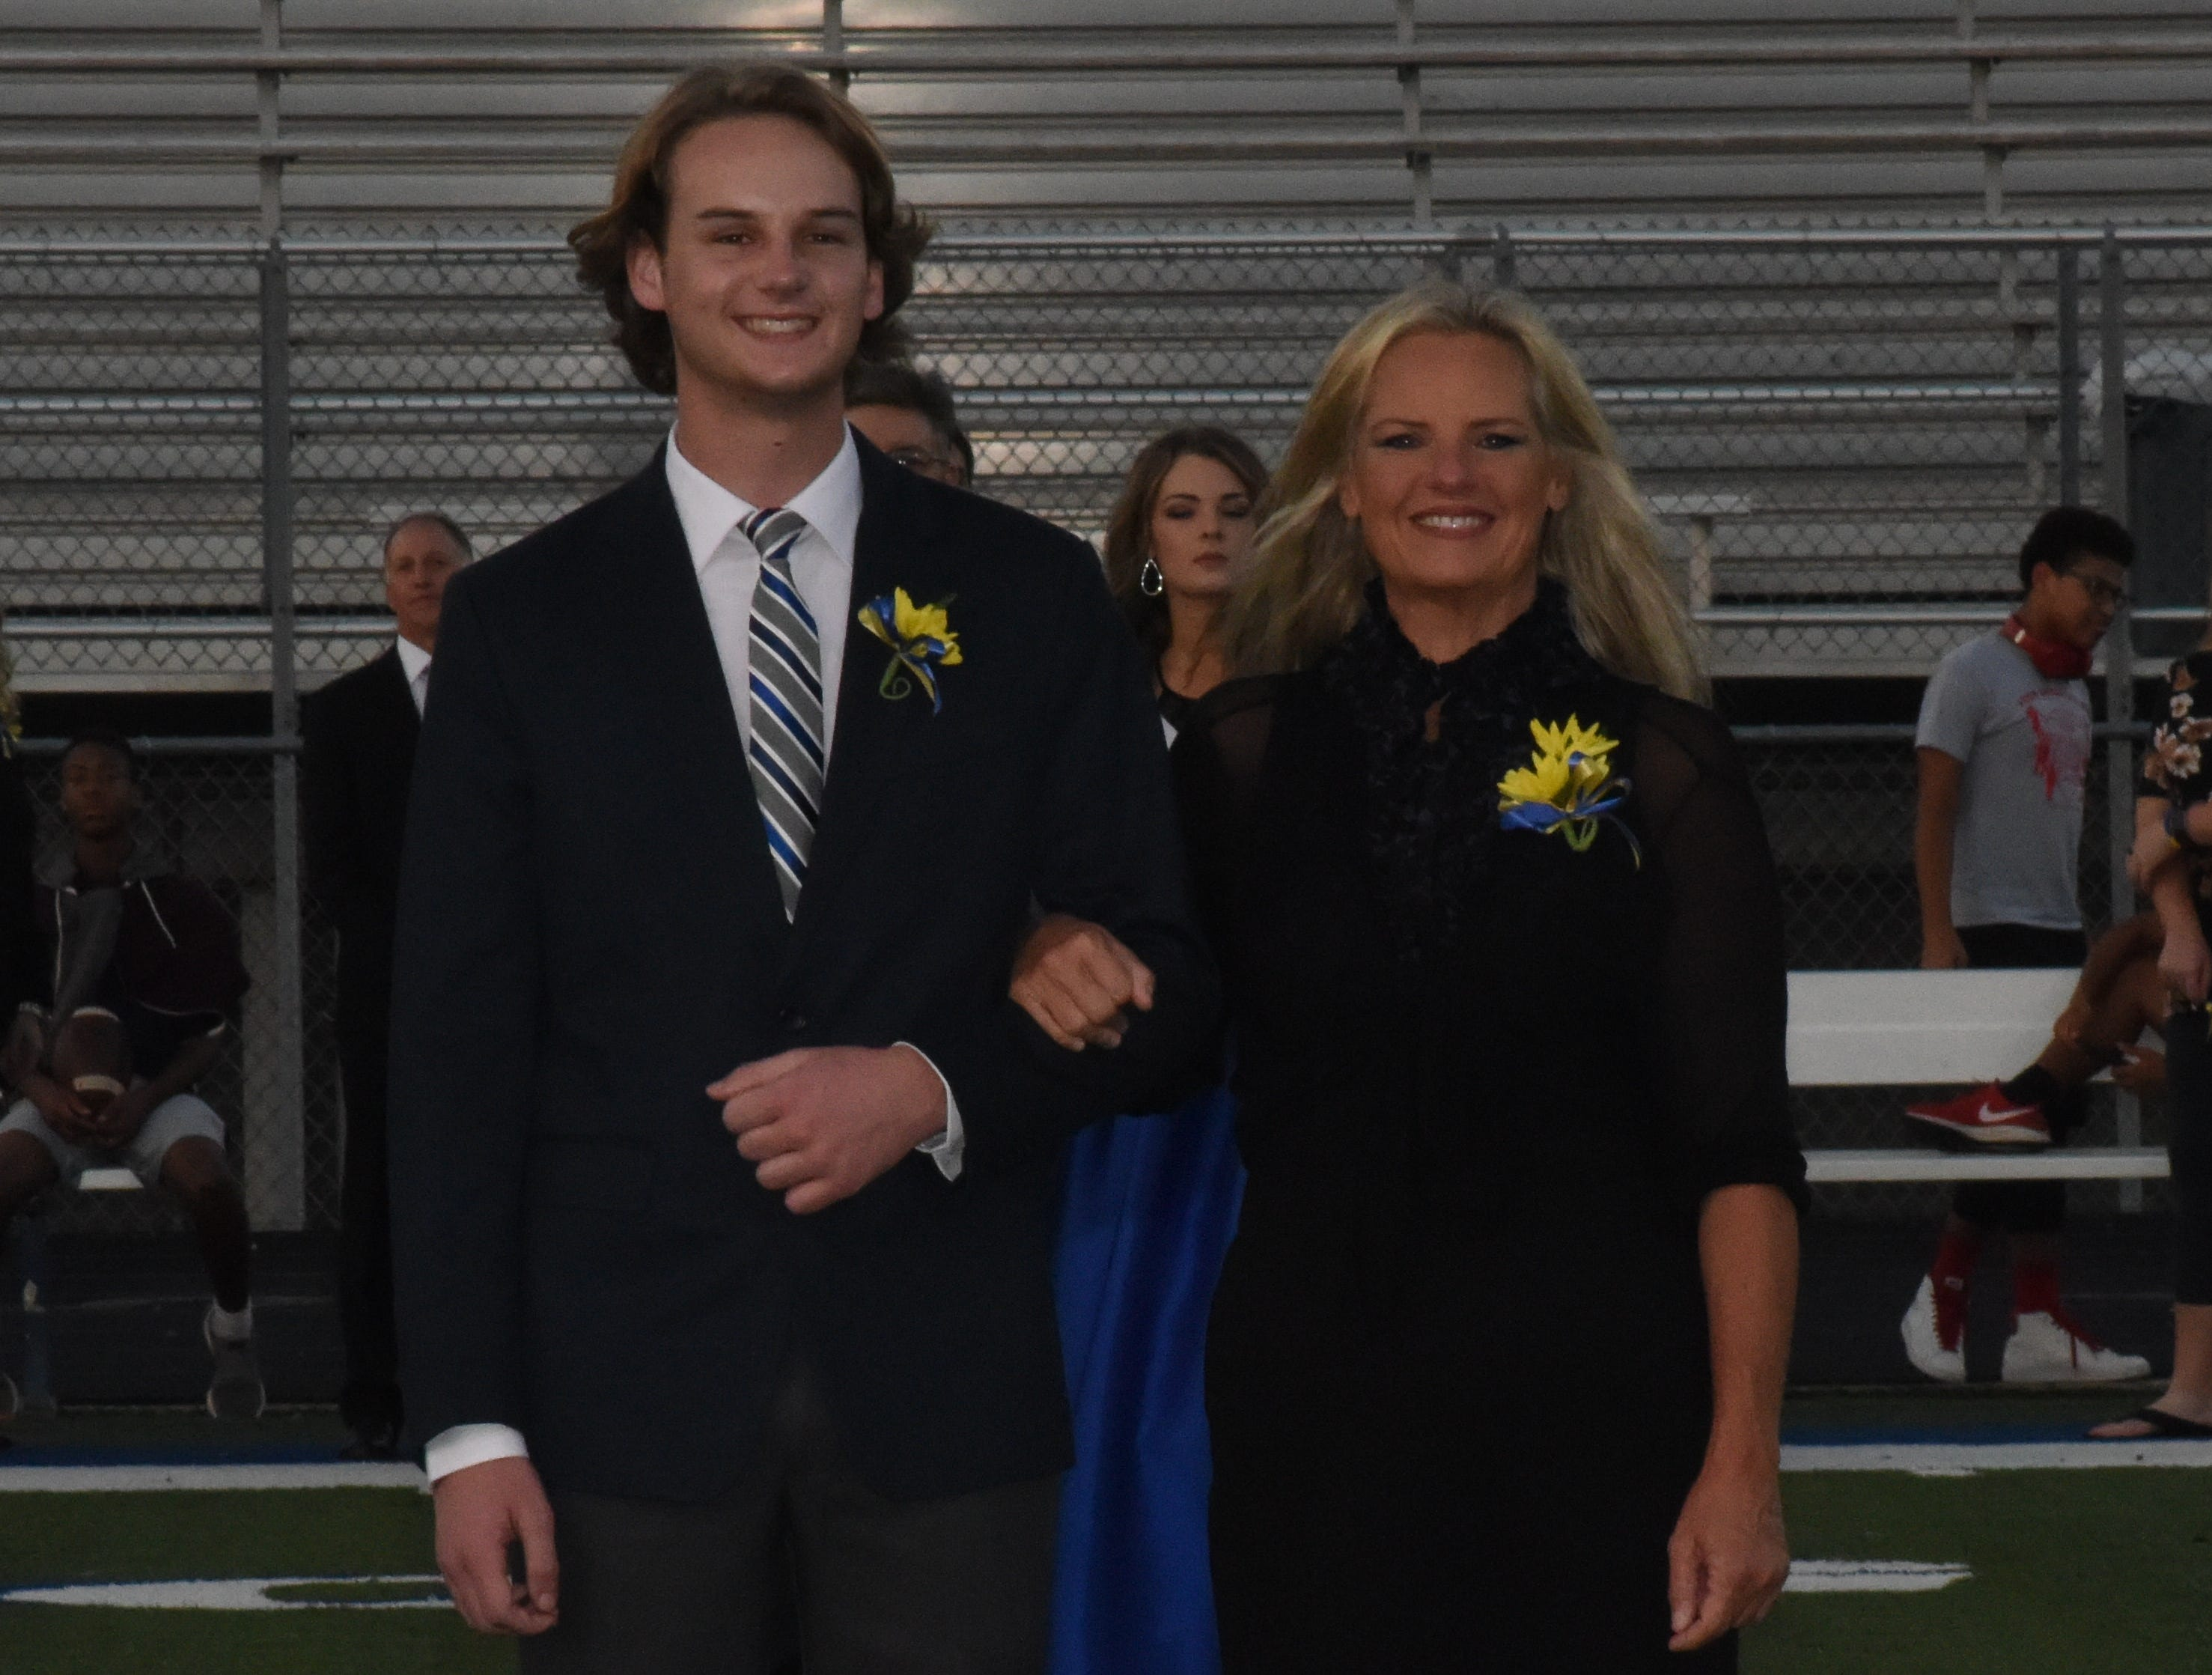 Senior knight Conner Oxford and his mother, Penny Oxford.